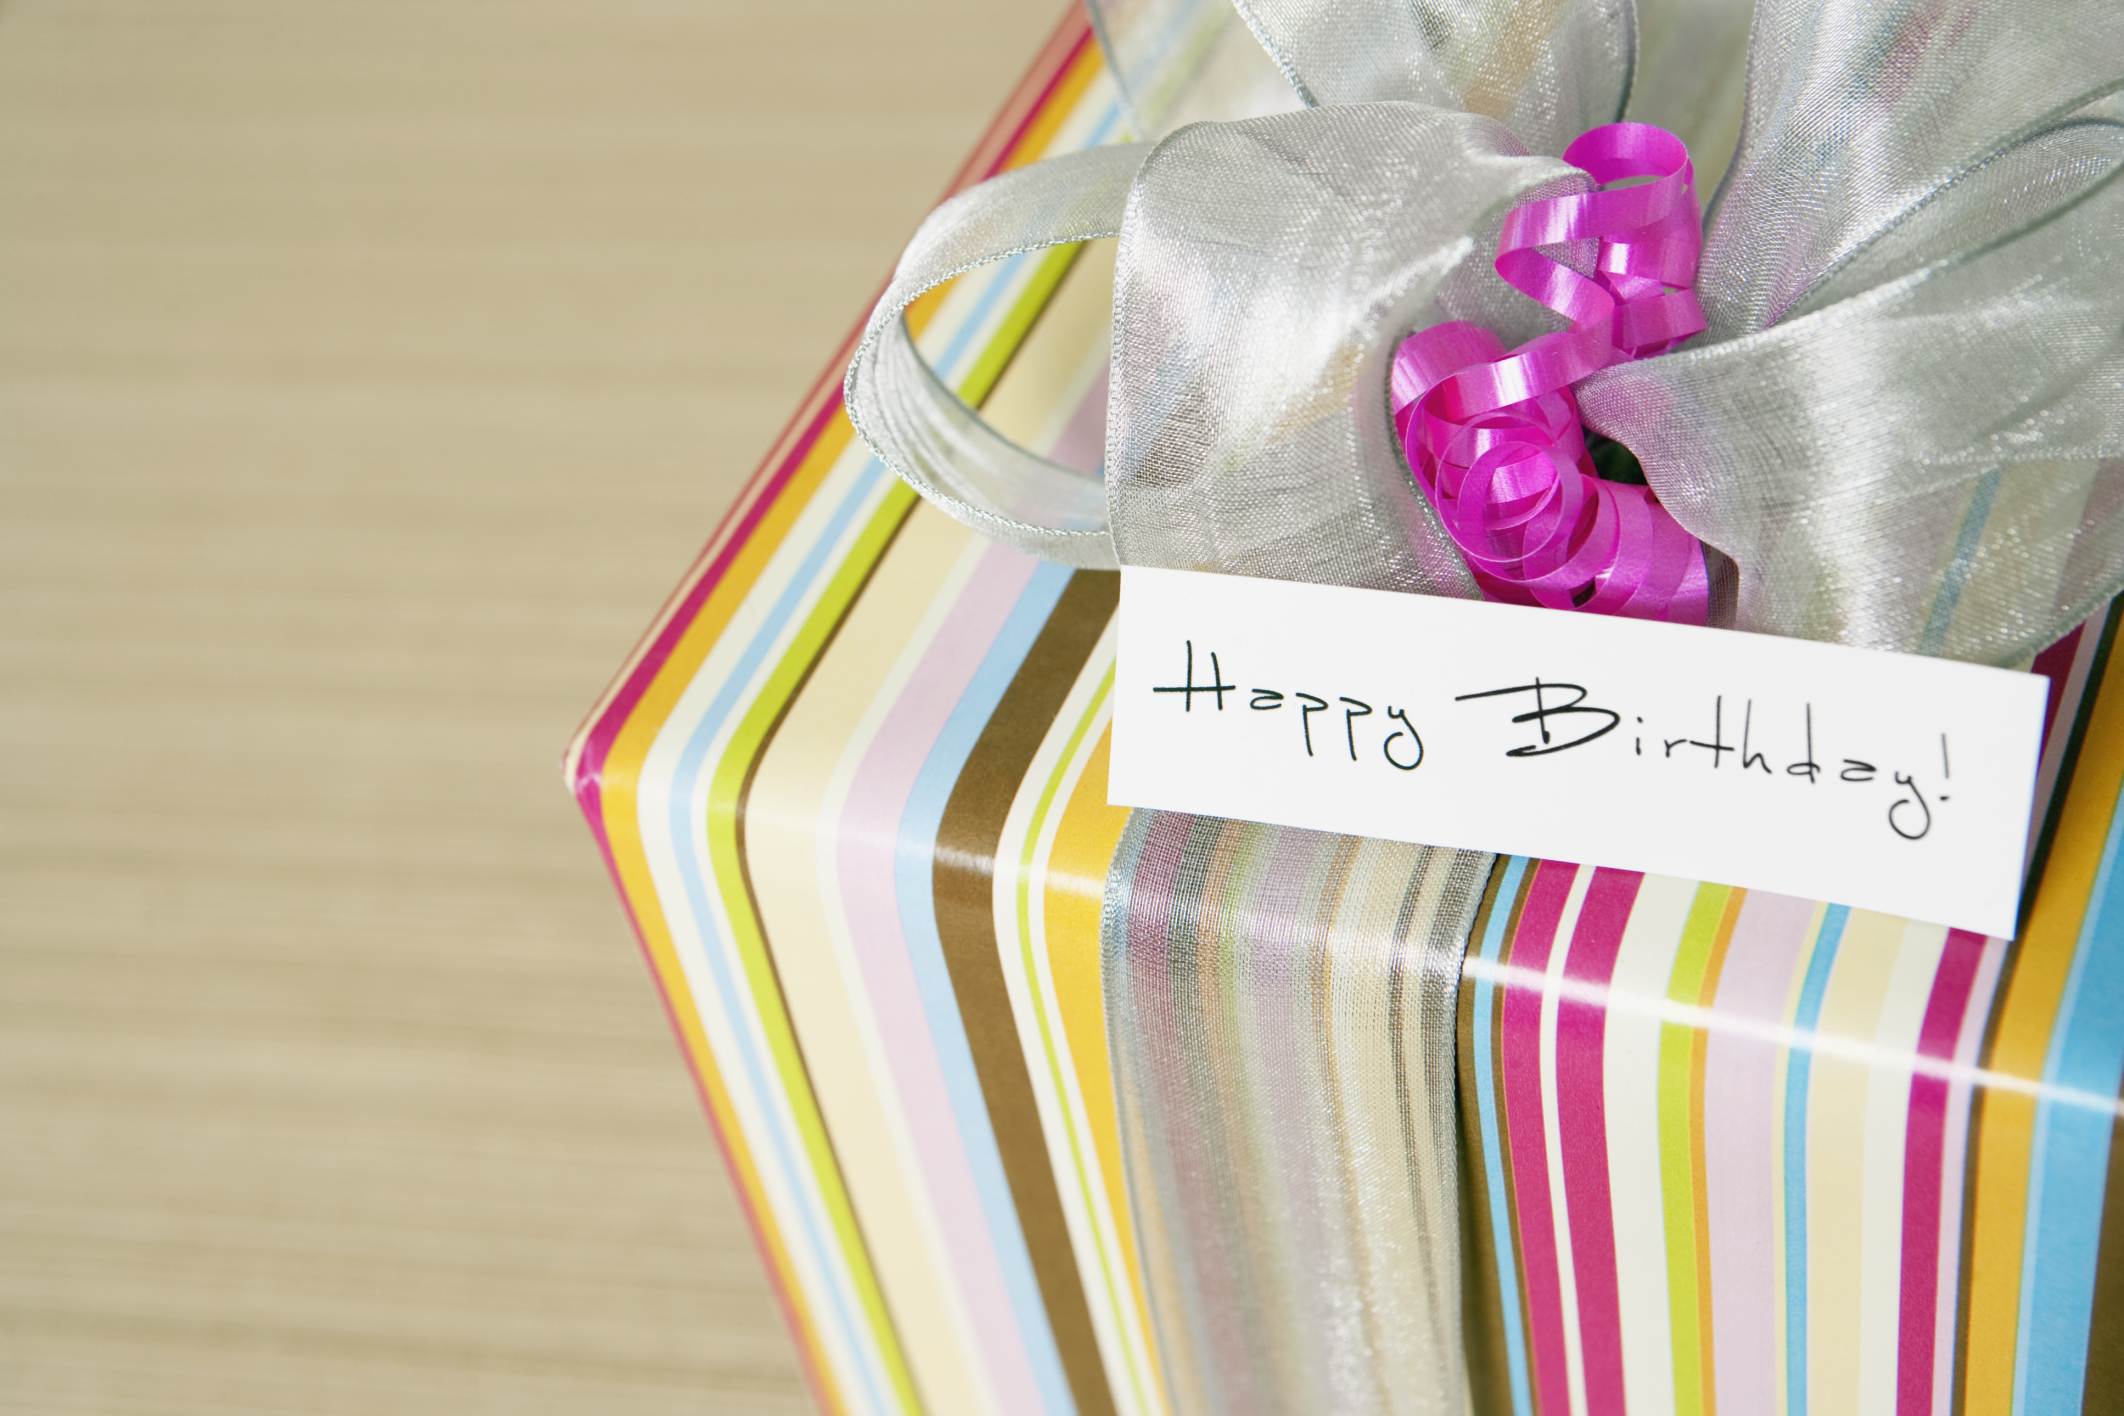 6 Christmas wrapping fails that will make you feel better about your efforts